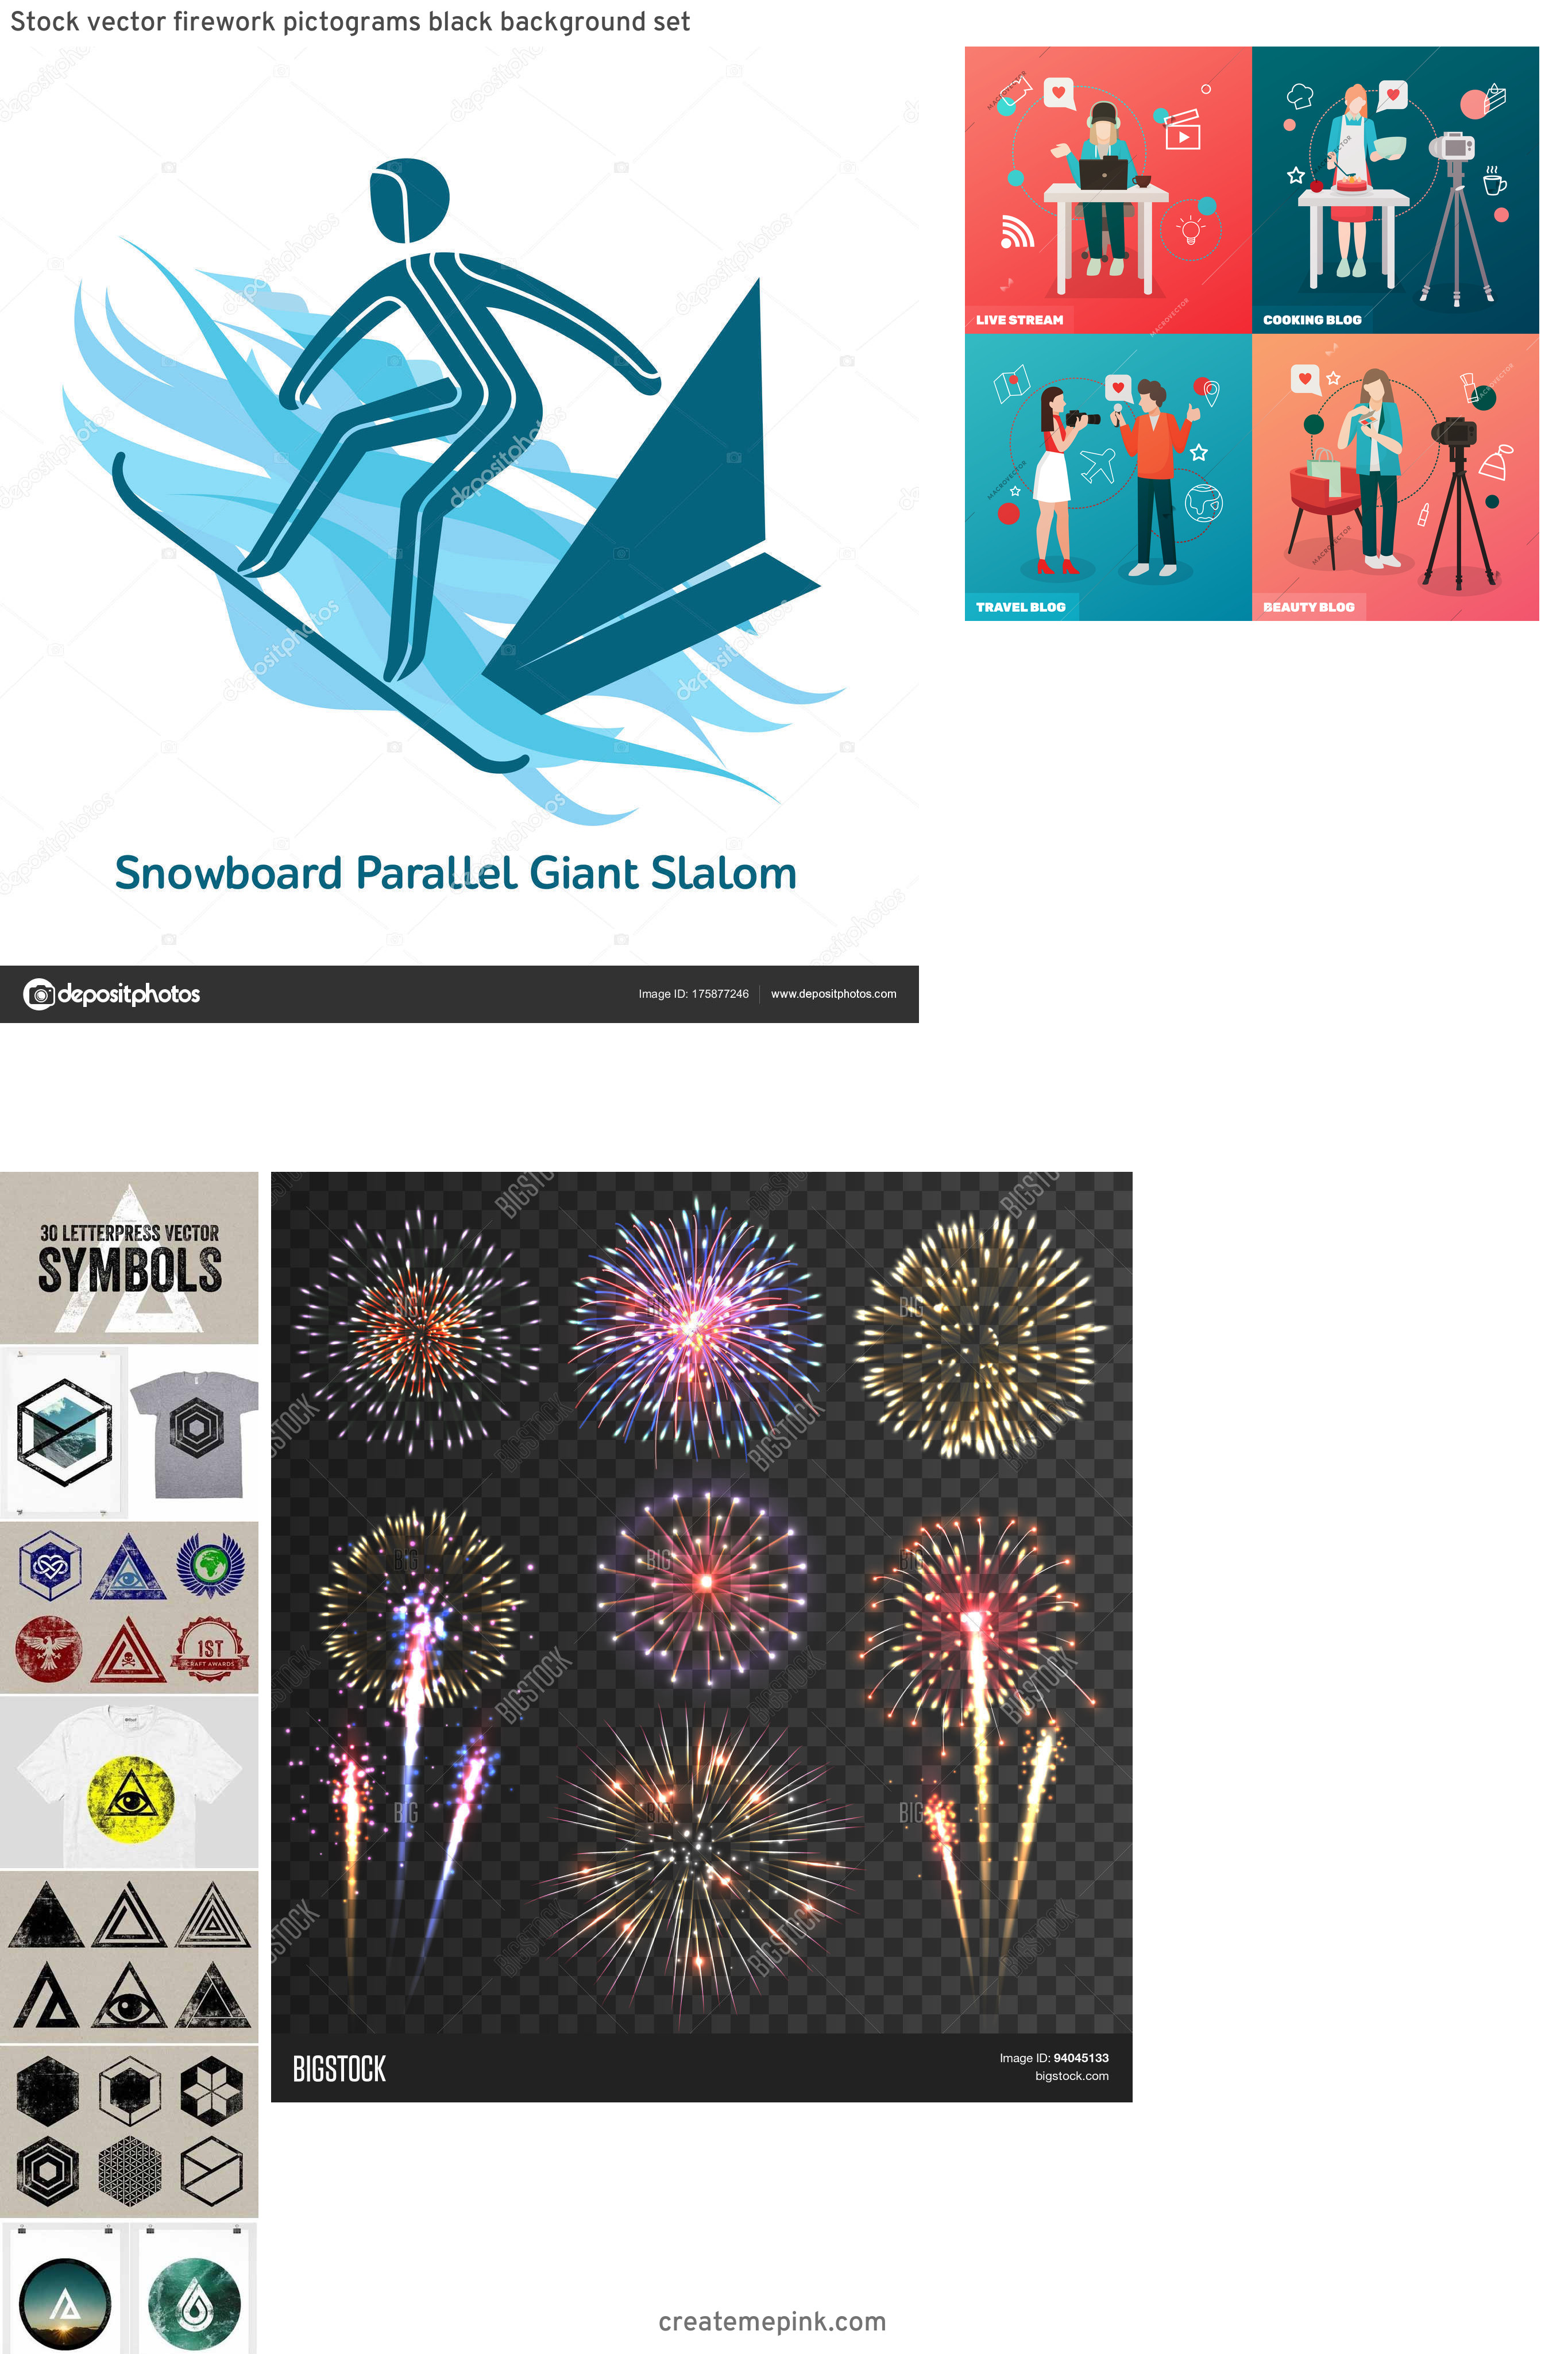 Vector Pictograms Events: Stock Vector Firework Pictograms Black Background Set